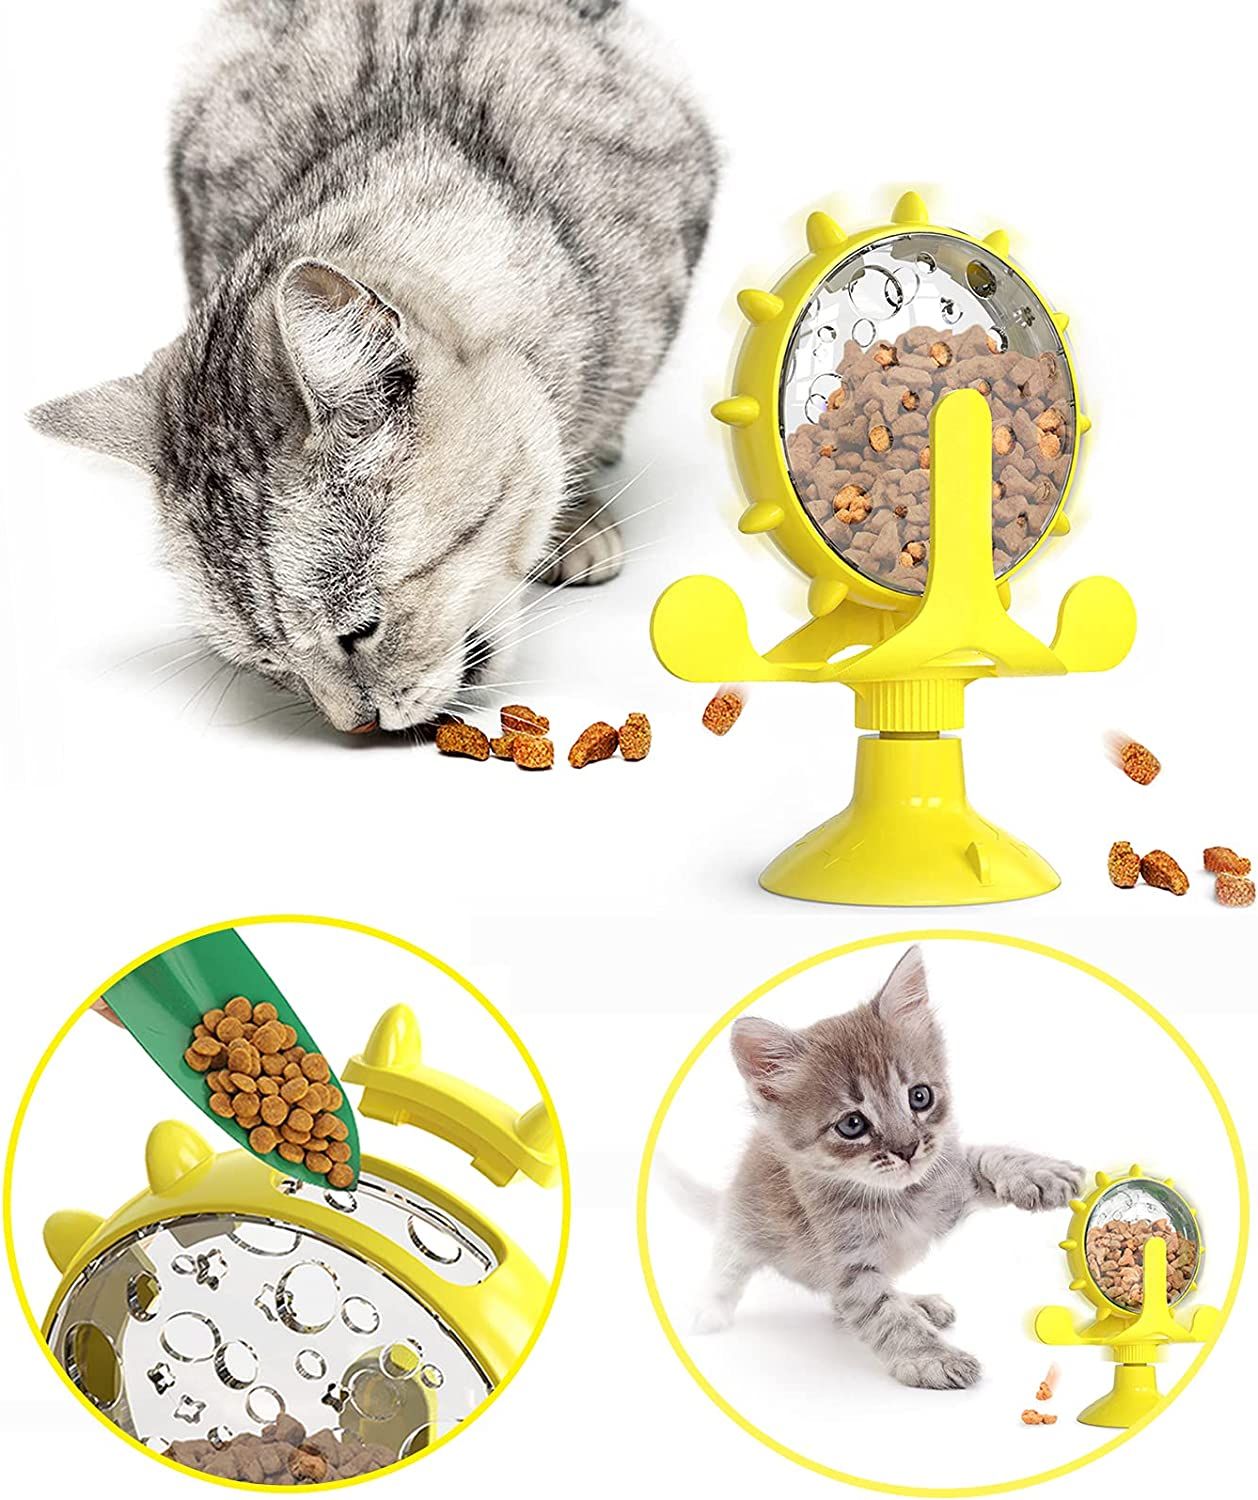 HUABANSHUI Automatic Feeder for Cat or Dog, Slow Food Dispenser Toys, Enrichment IQ Treat Dispensing Dog cat Toys for Indoor(Pet Supplies)